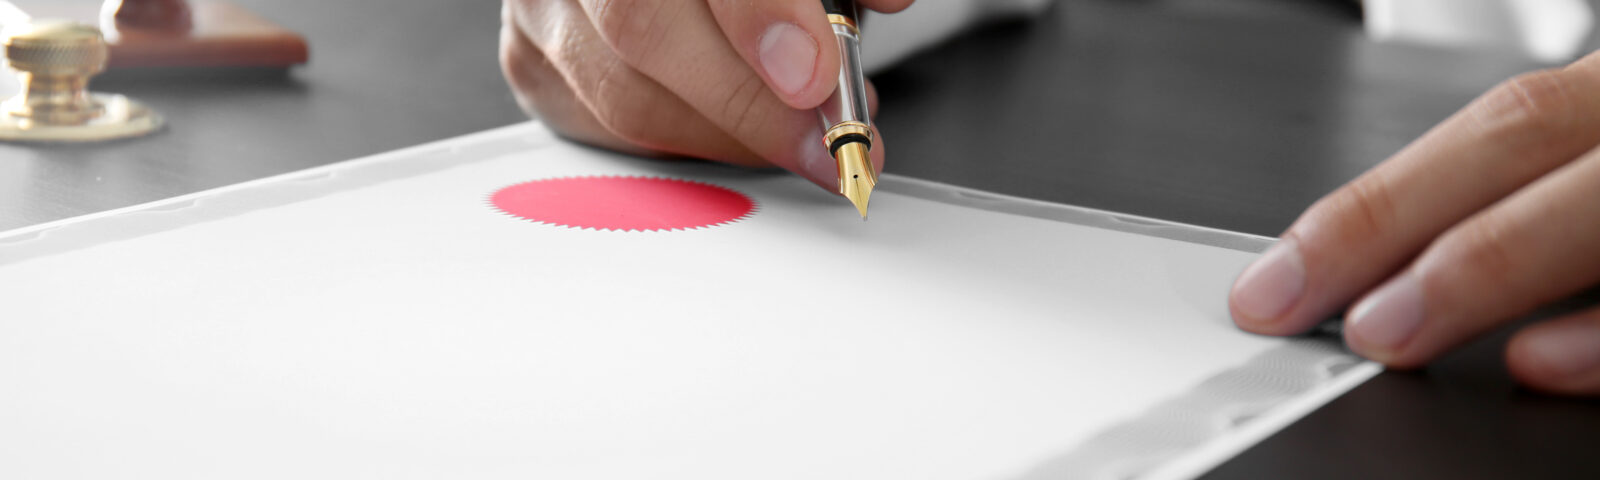 Where there is a will, there are relatives – on notarized wills and dementia